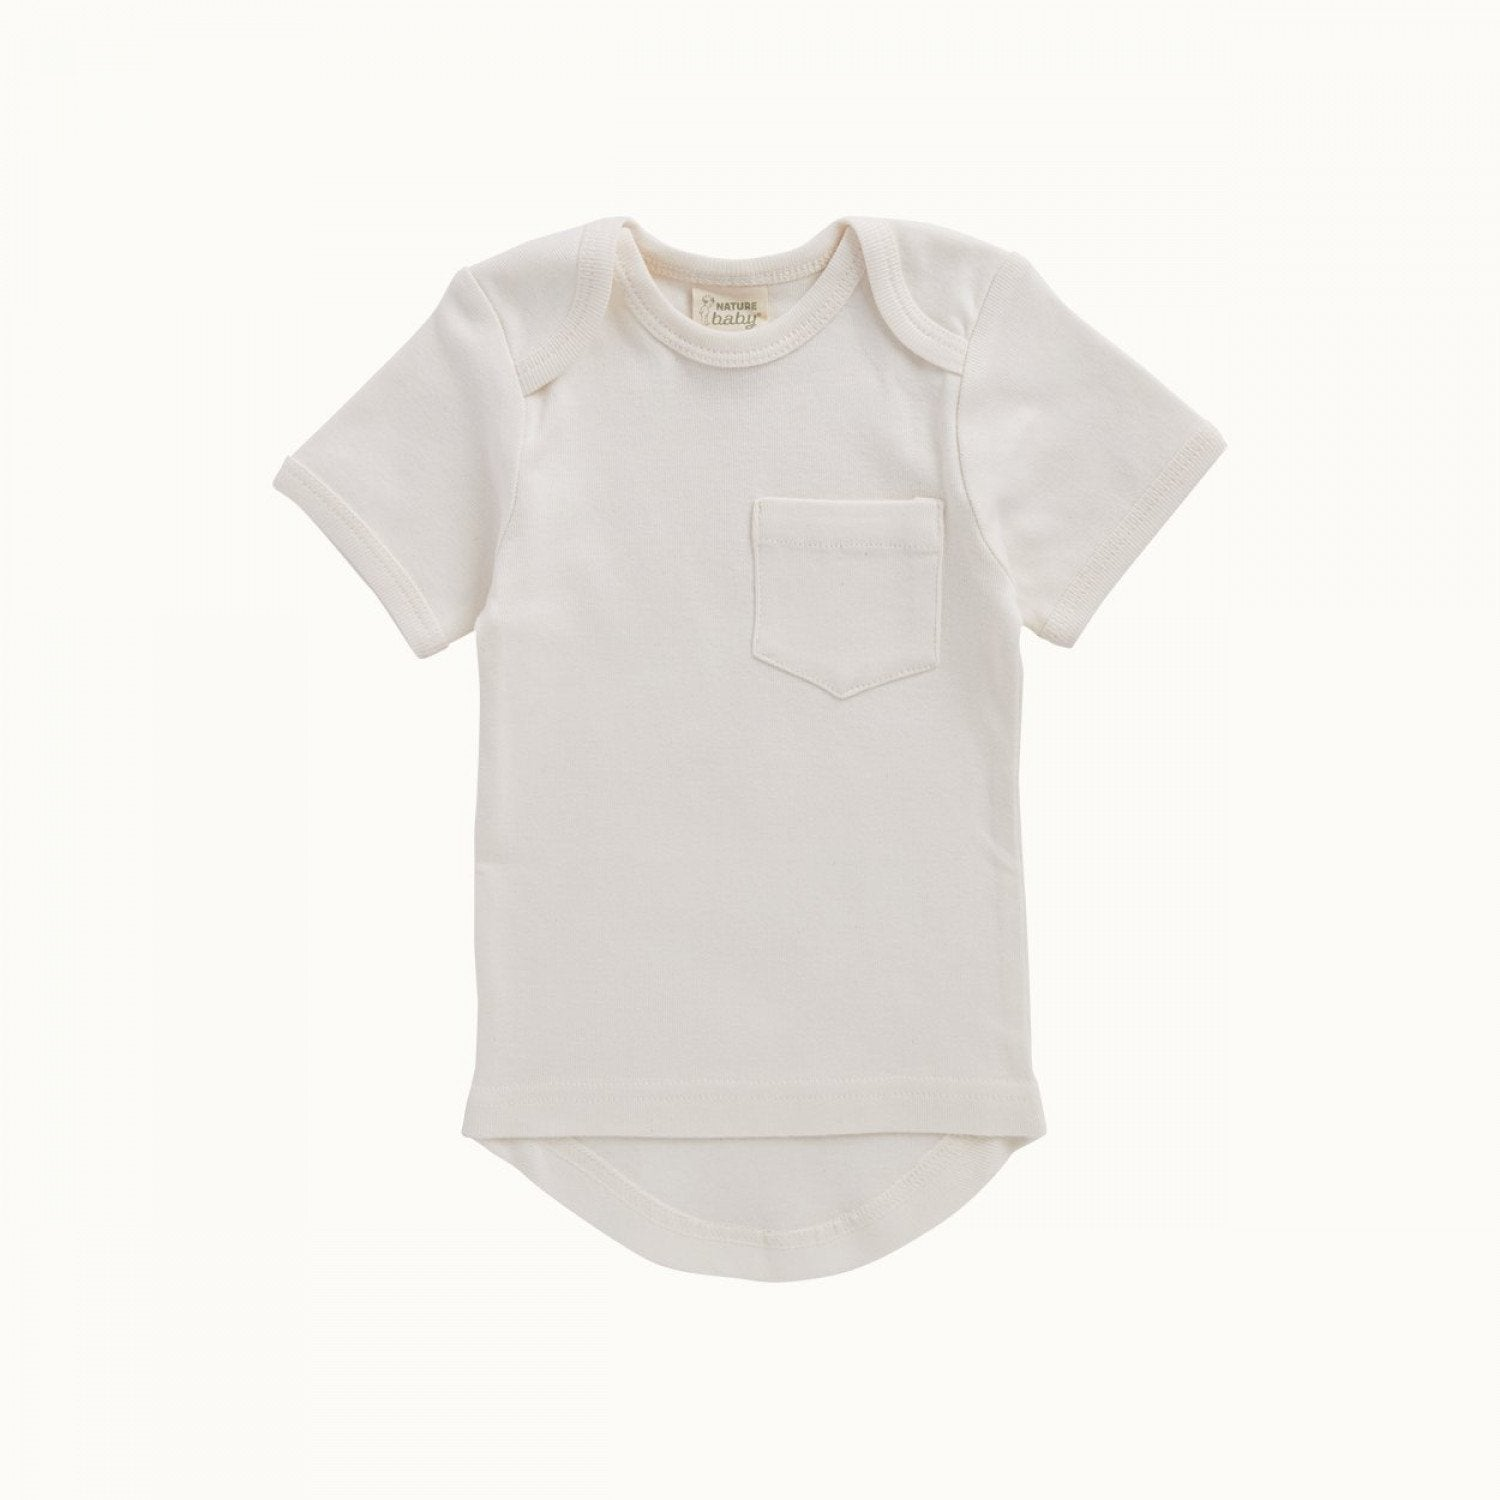 0-3 Months Nature Baby Organic Cotton Short Sleeve T-Shirt - Naked Baby Eco Boutique